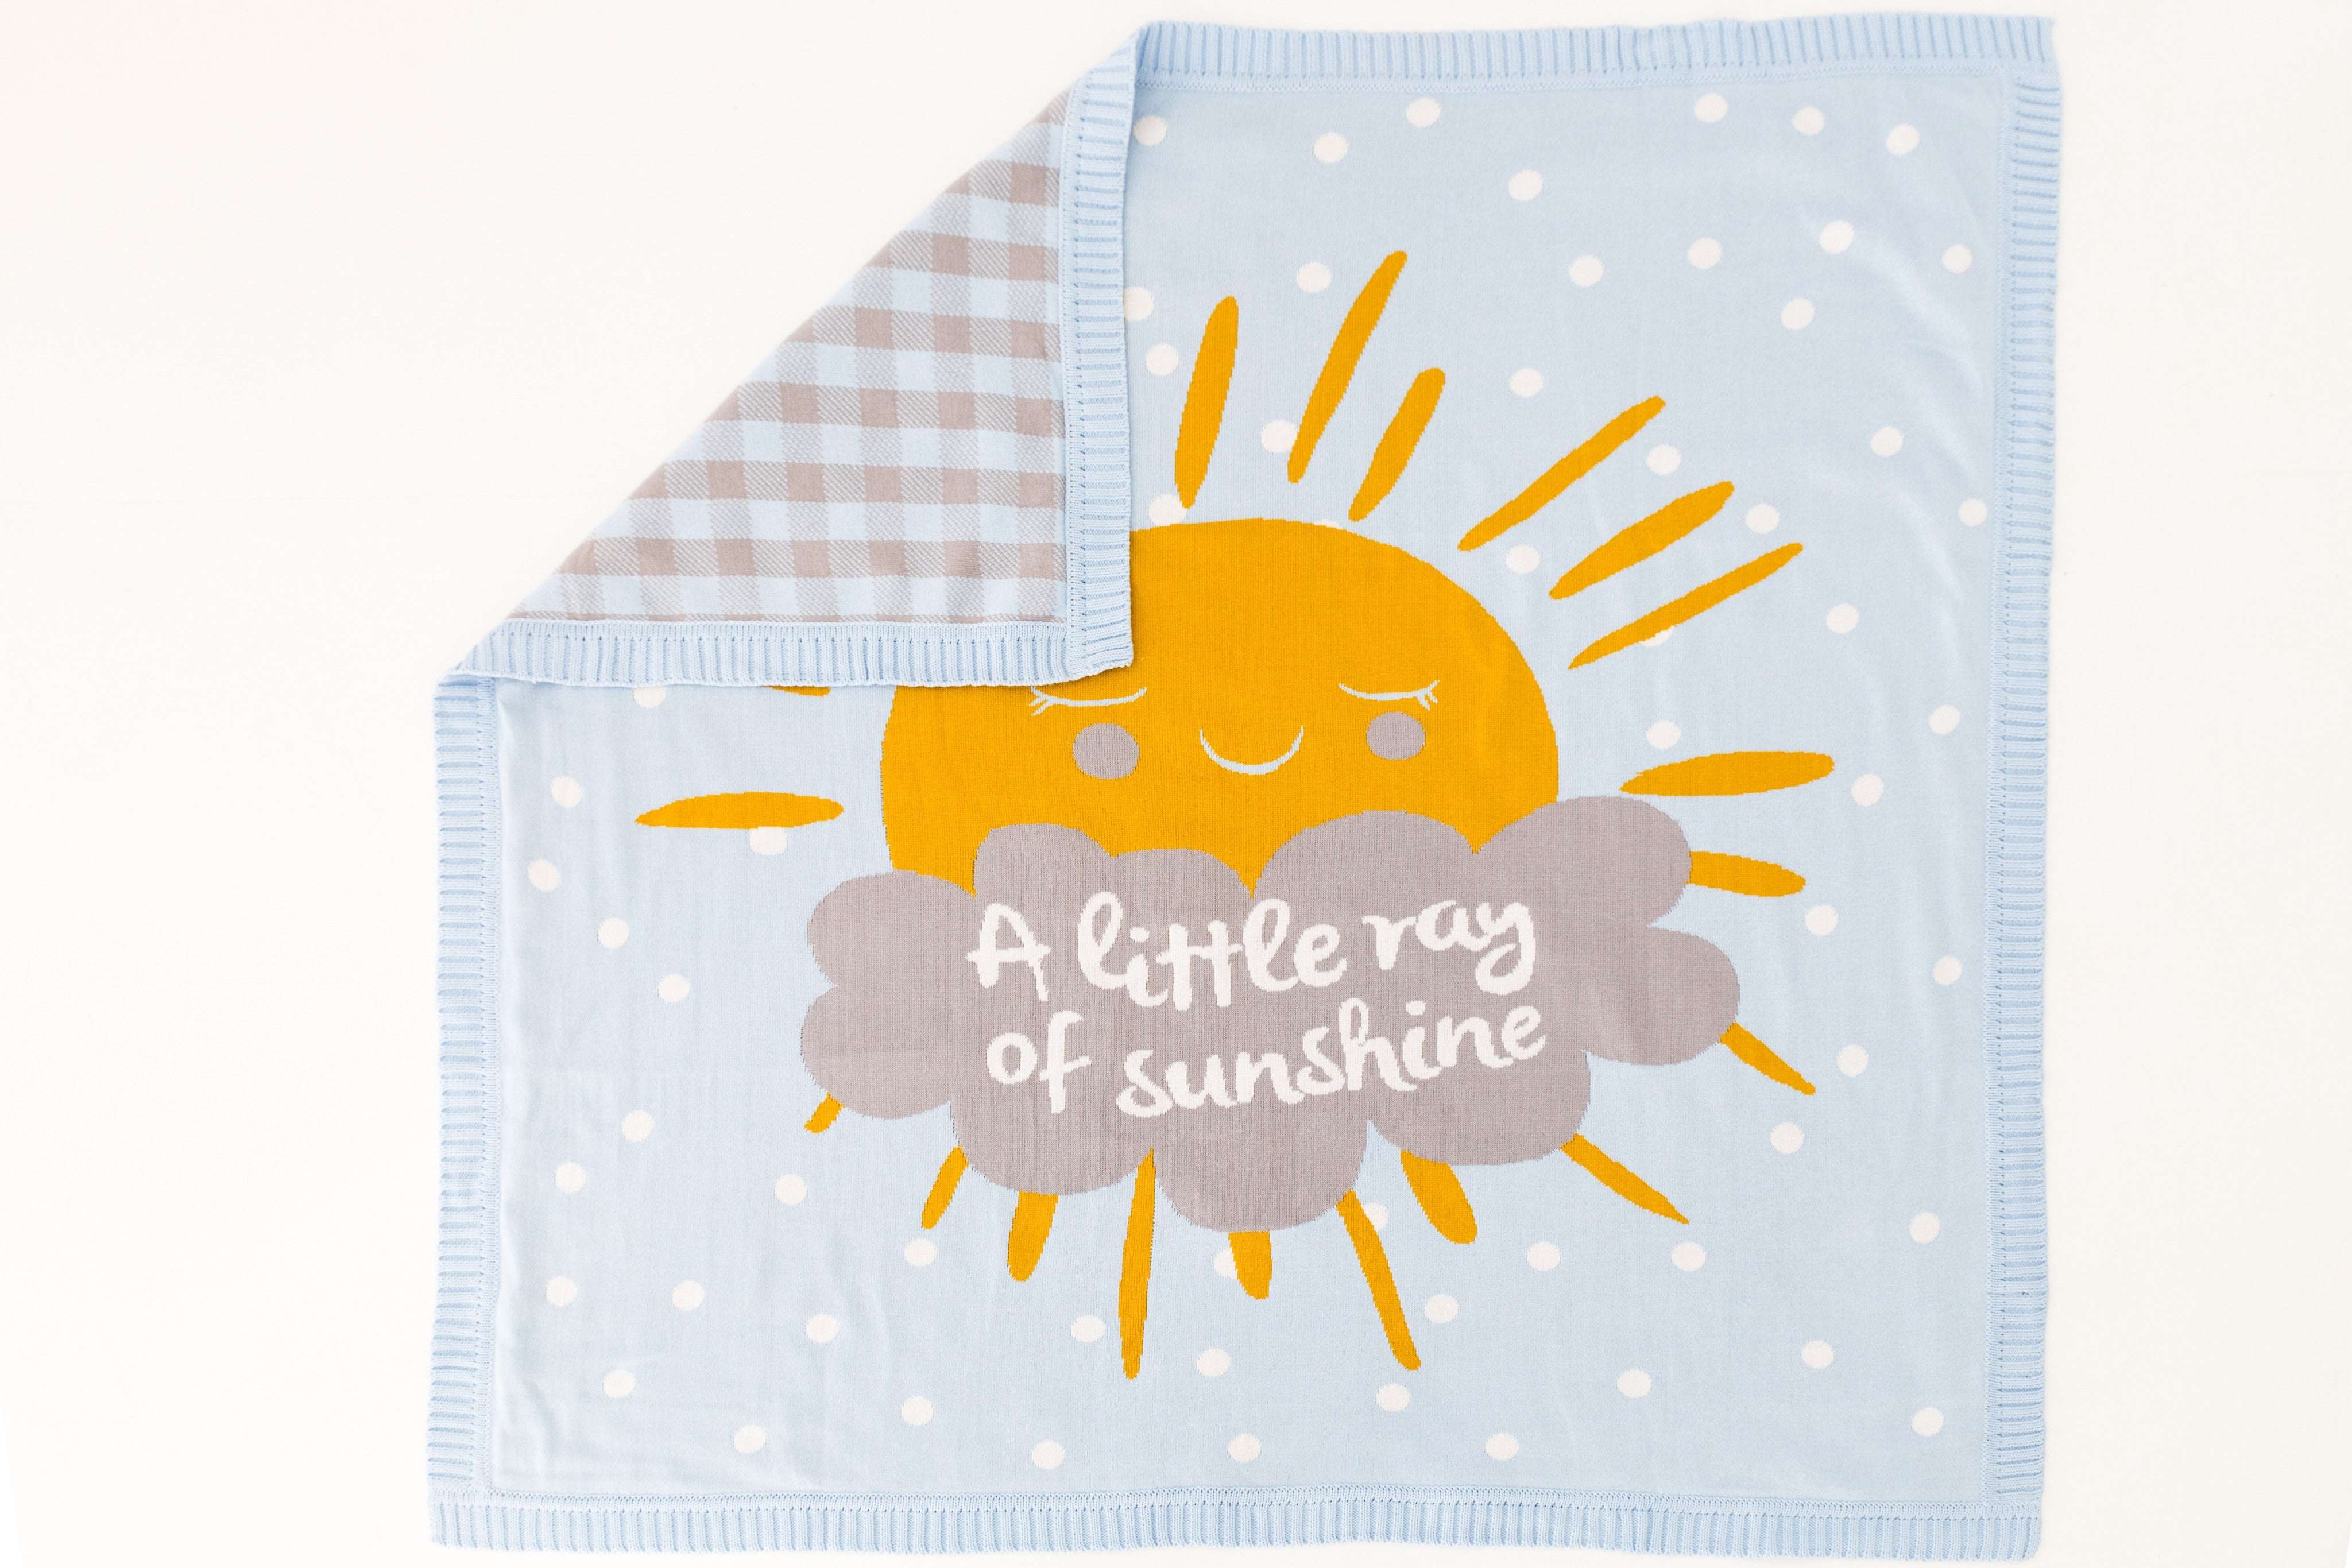 CLEARANCE: Knitted Blanket (A Little Ray of Sunshine)